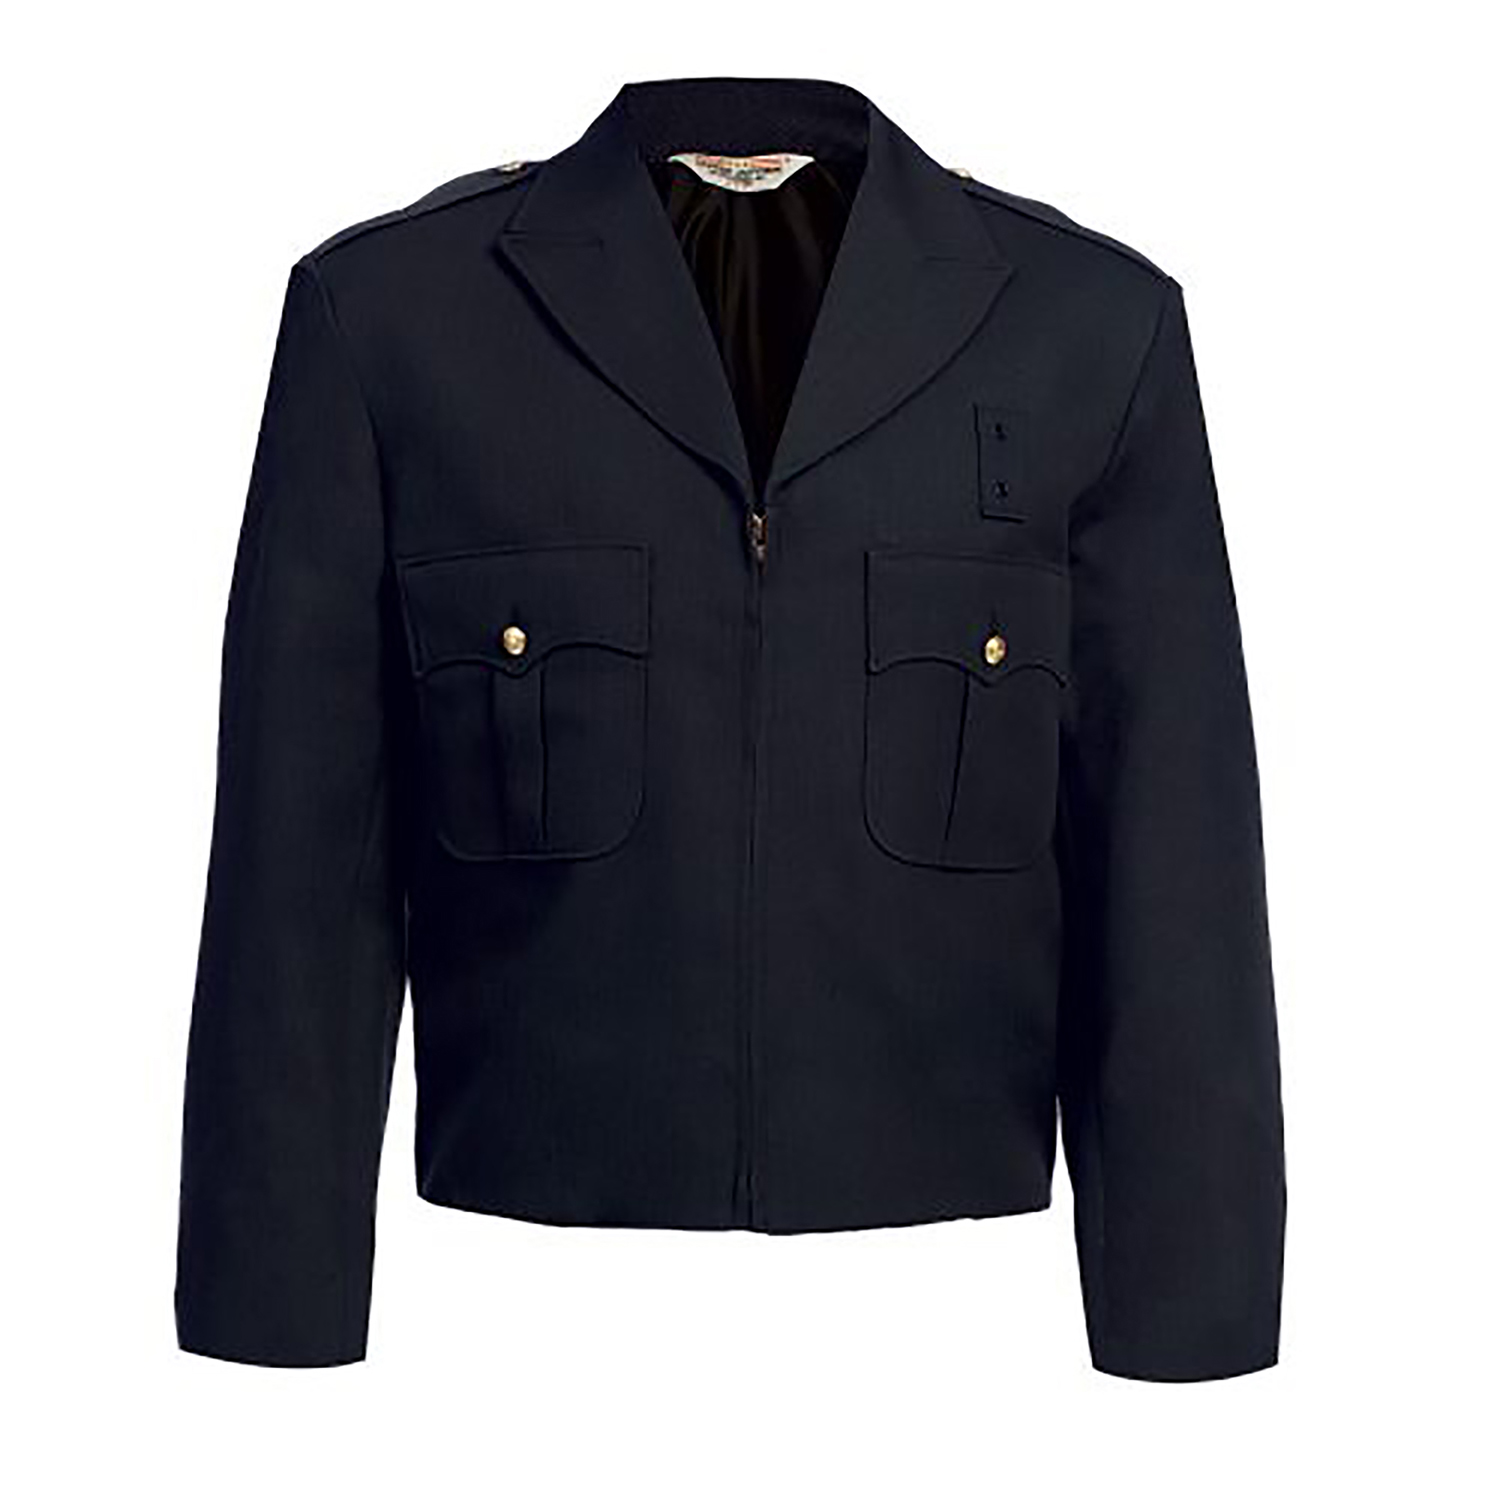 United Uniform Zippered Front Ike Jacket Polyester and Wool